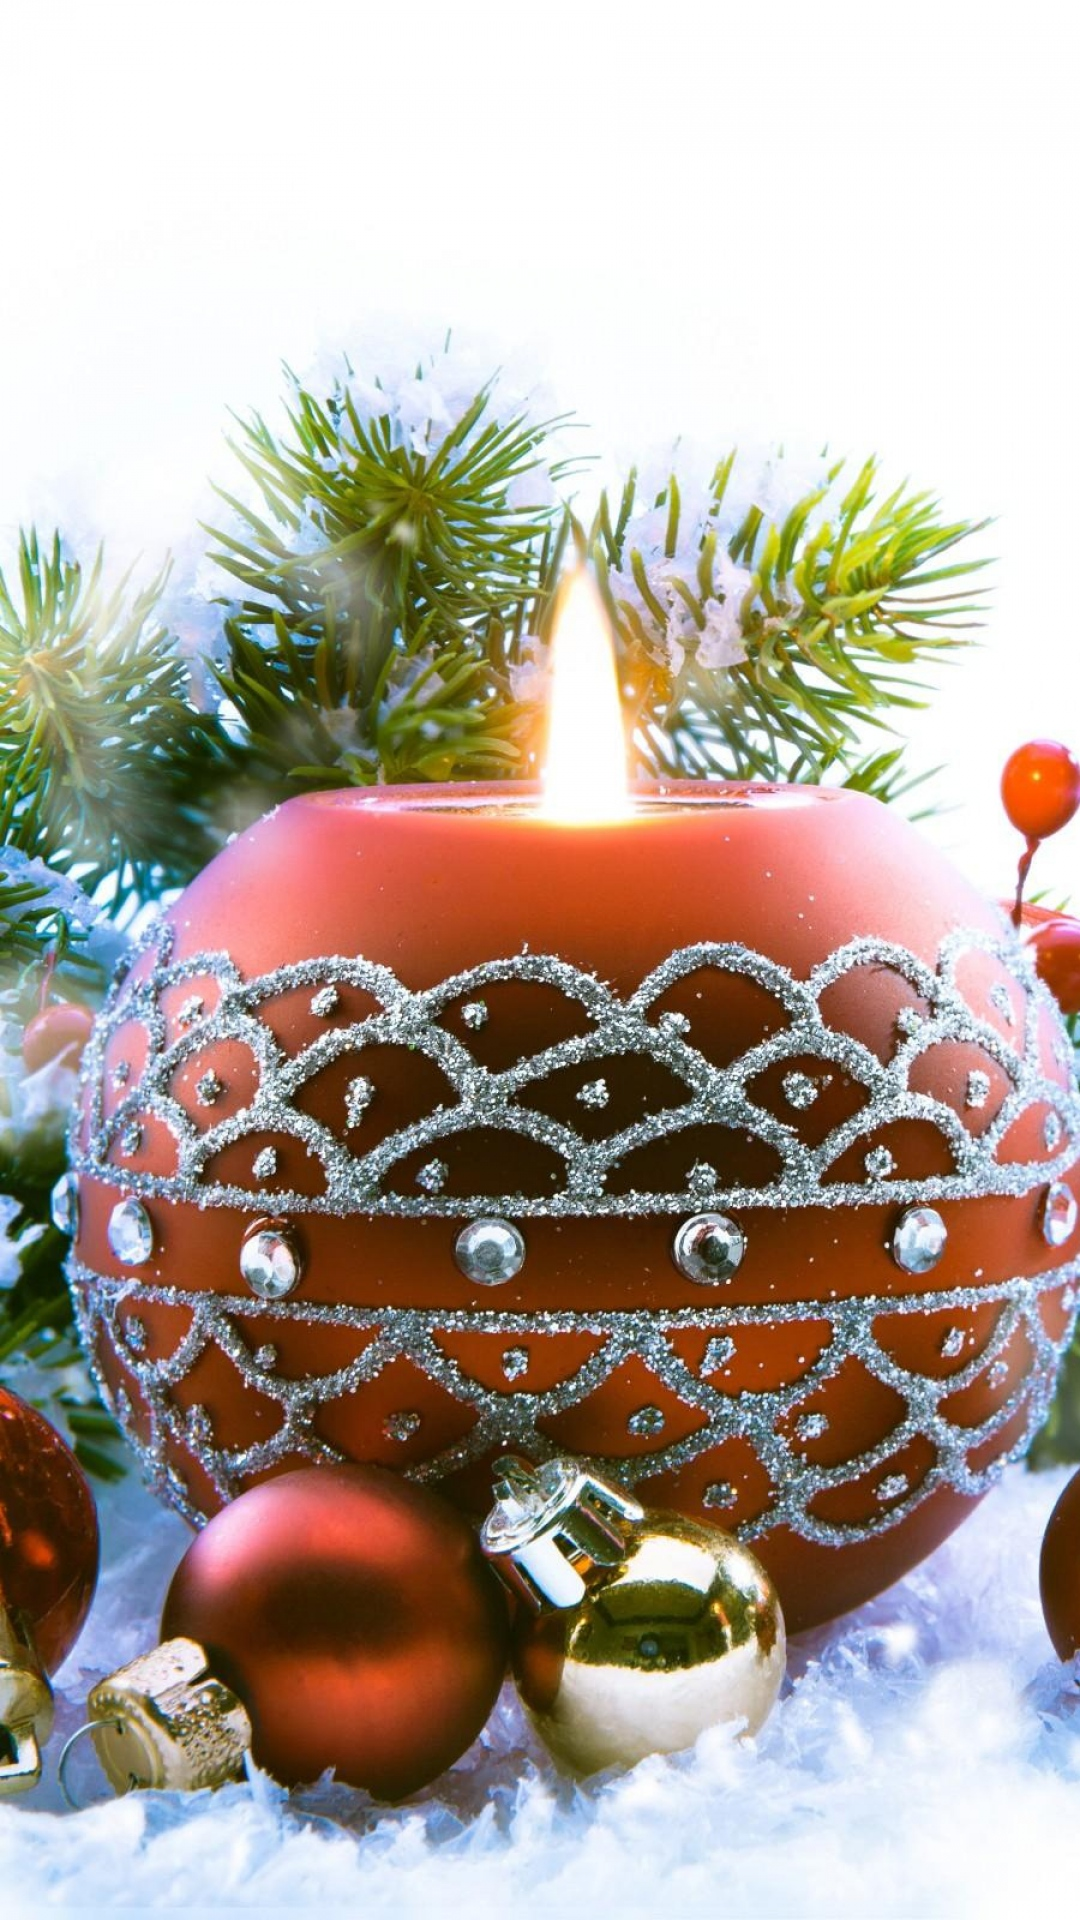 Christmas Candle Htc One Wallpaper Best Htc One Wallpapers